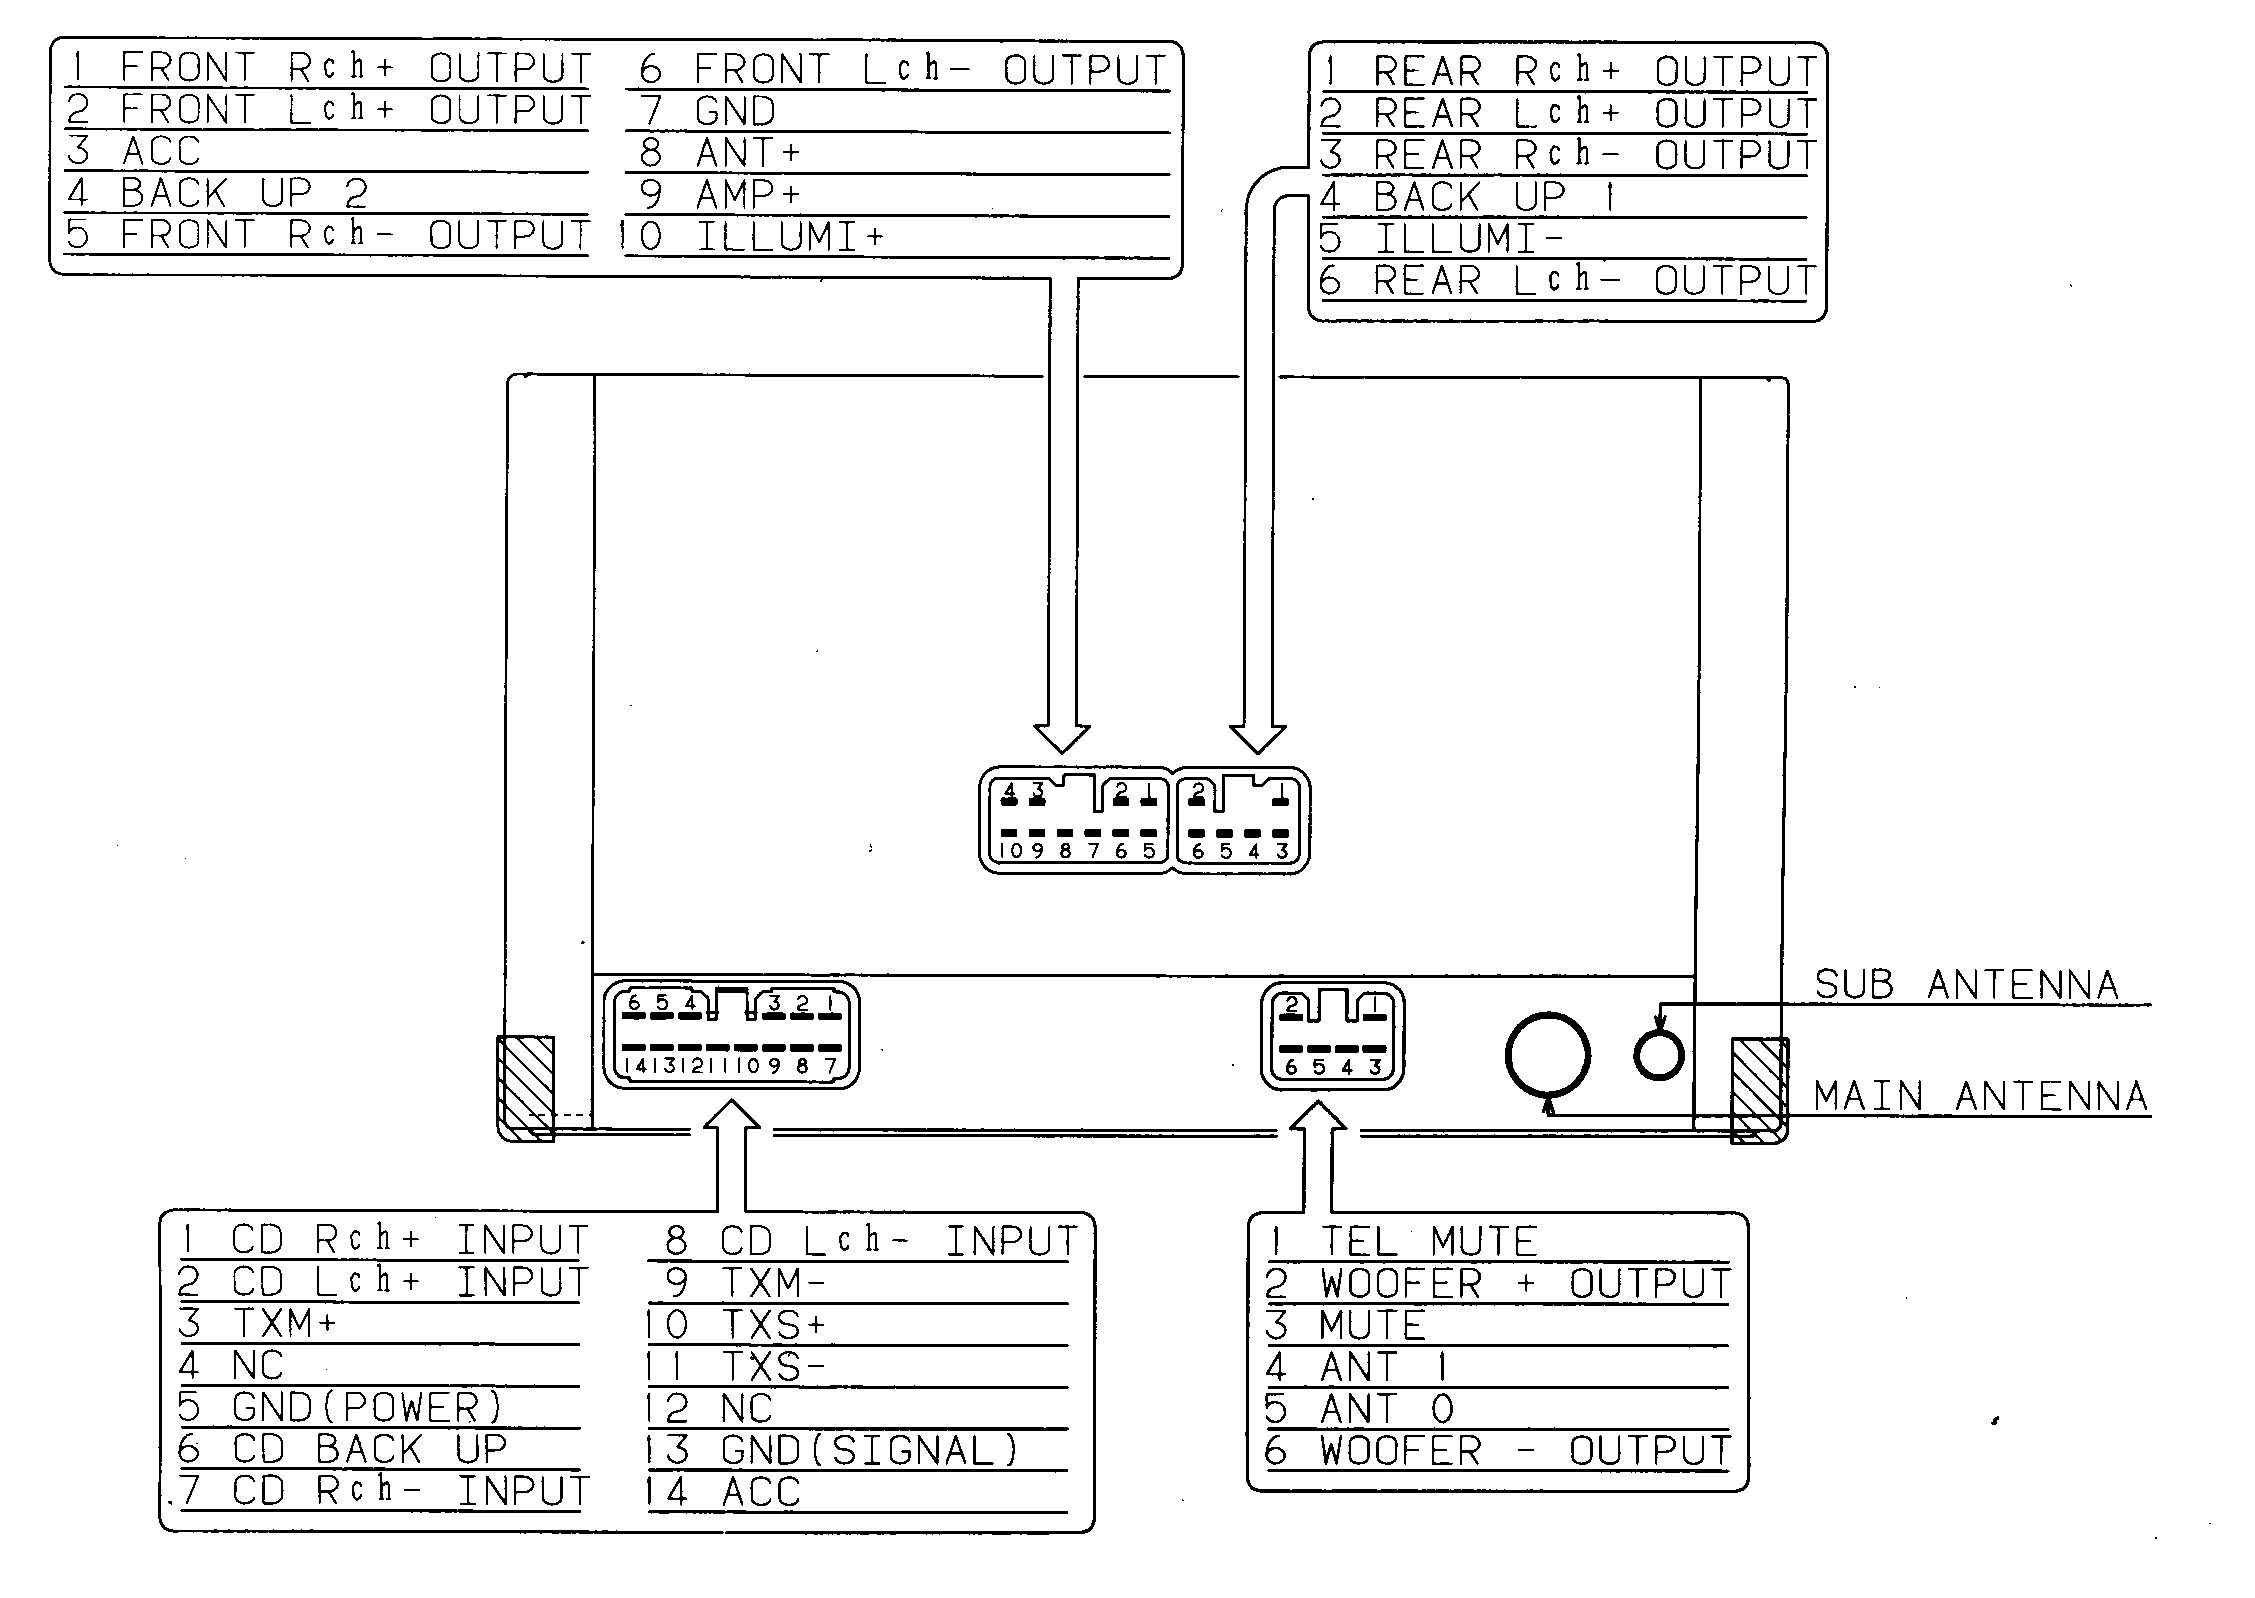 toyota car stereo wiring diagram toyota image fujitsu ten car audio wiring diagram jodebal com on toyota car stereo wiring diagram